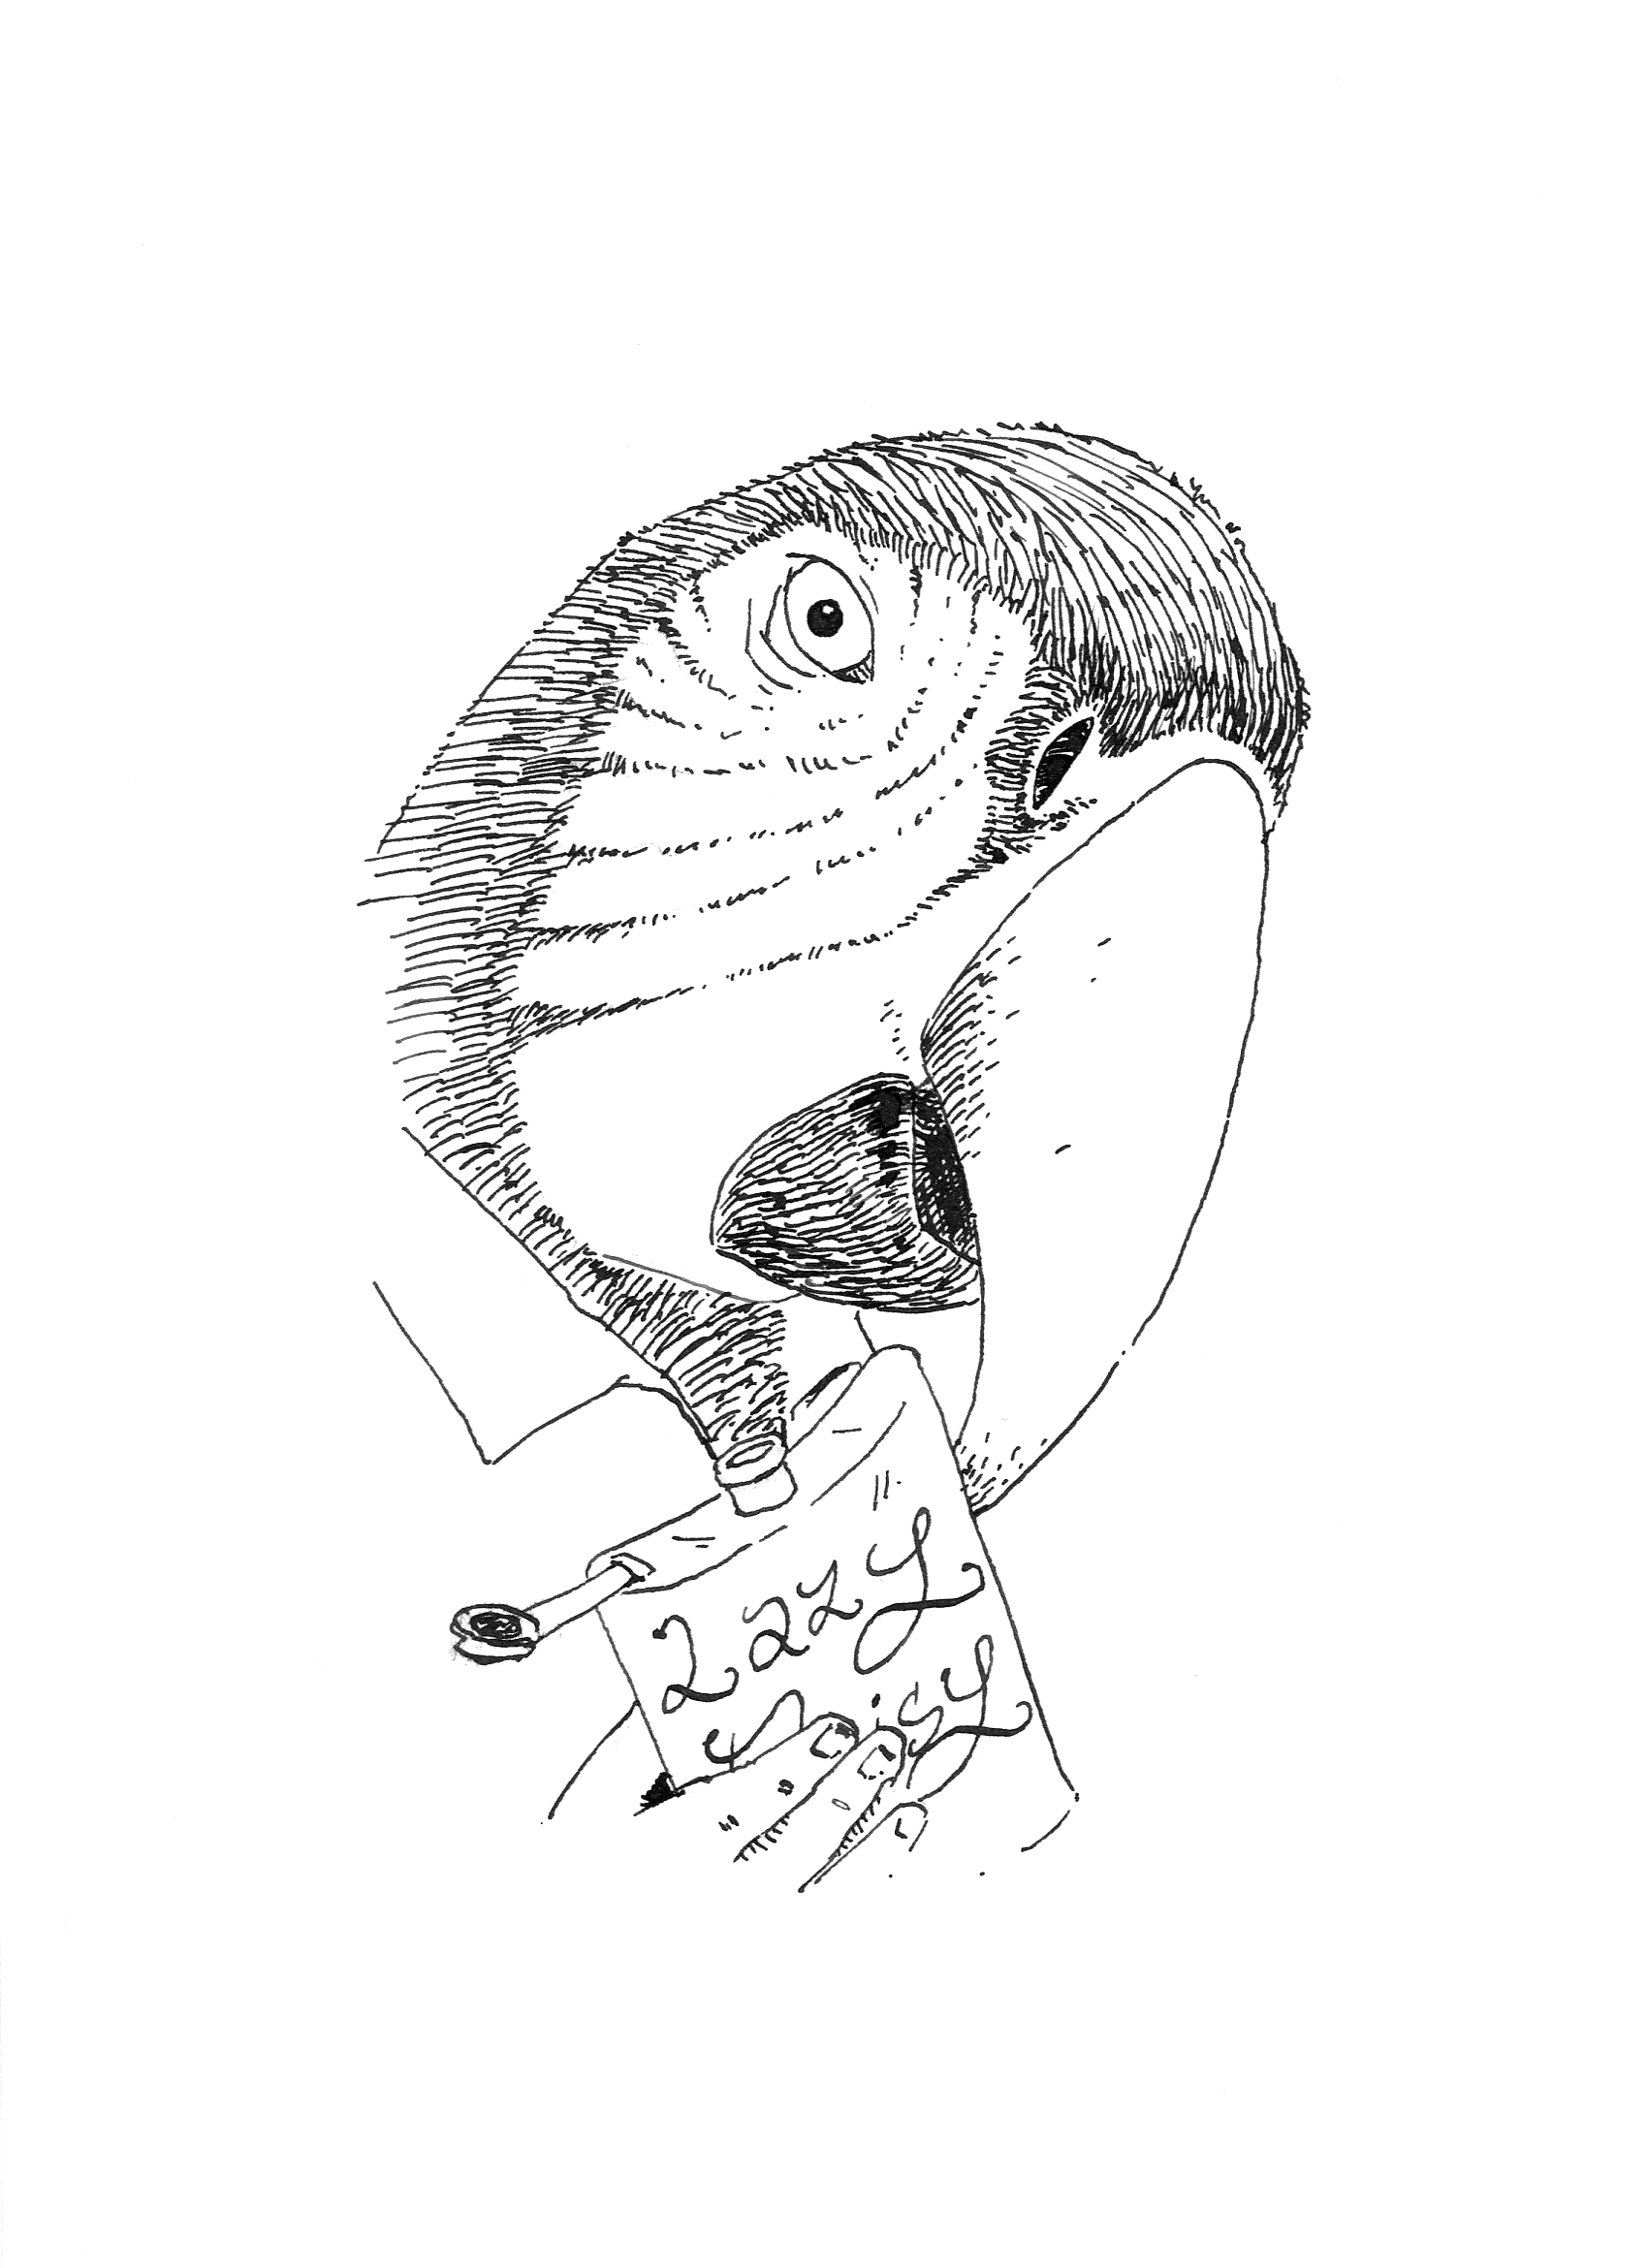 The Parrot by pachryso